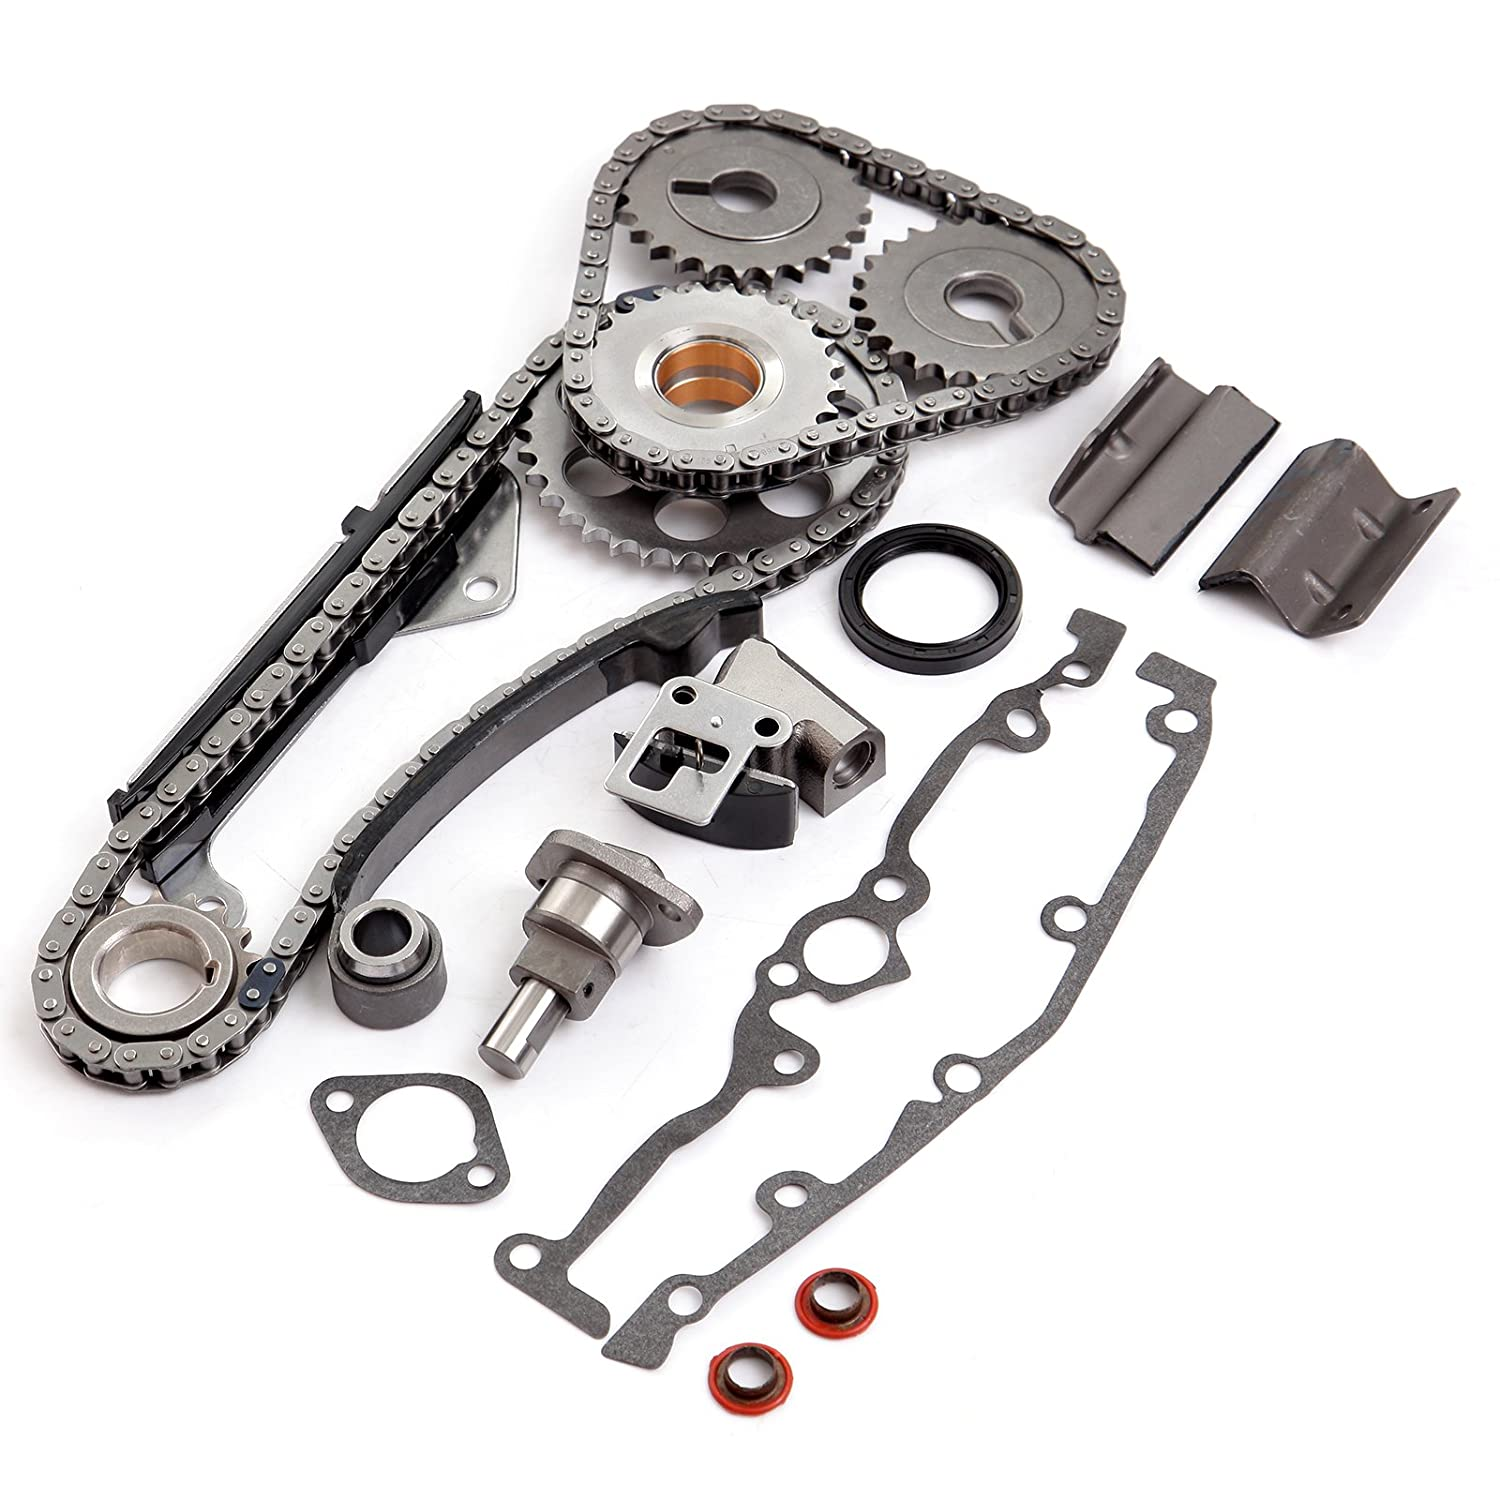 SCITOO Timing Chain Kit fit 1991-1999 1997 1998 Nissan 200SX NX Sentra 1.6L DOHC GA16DE Engine 16 Valve 052078-5206-1755251